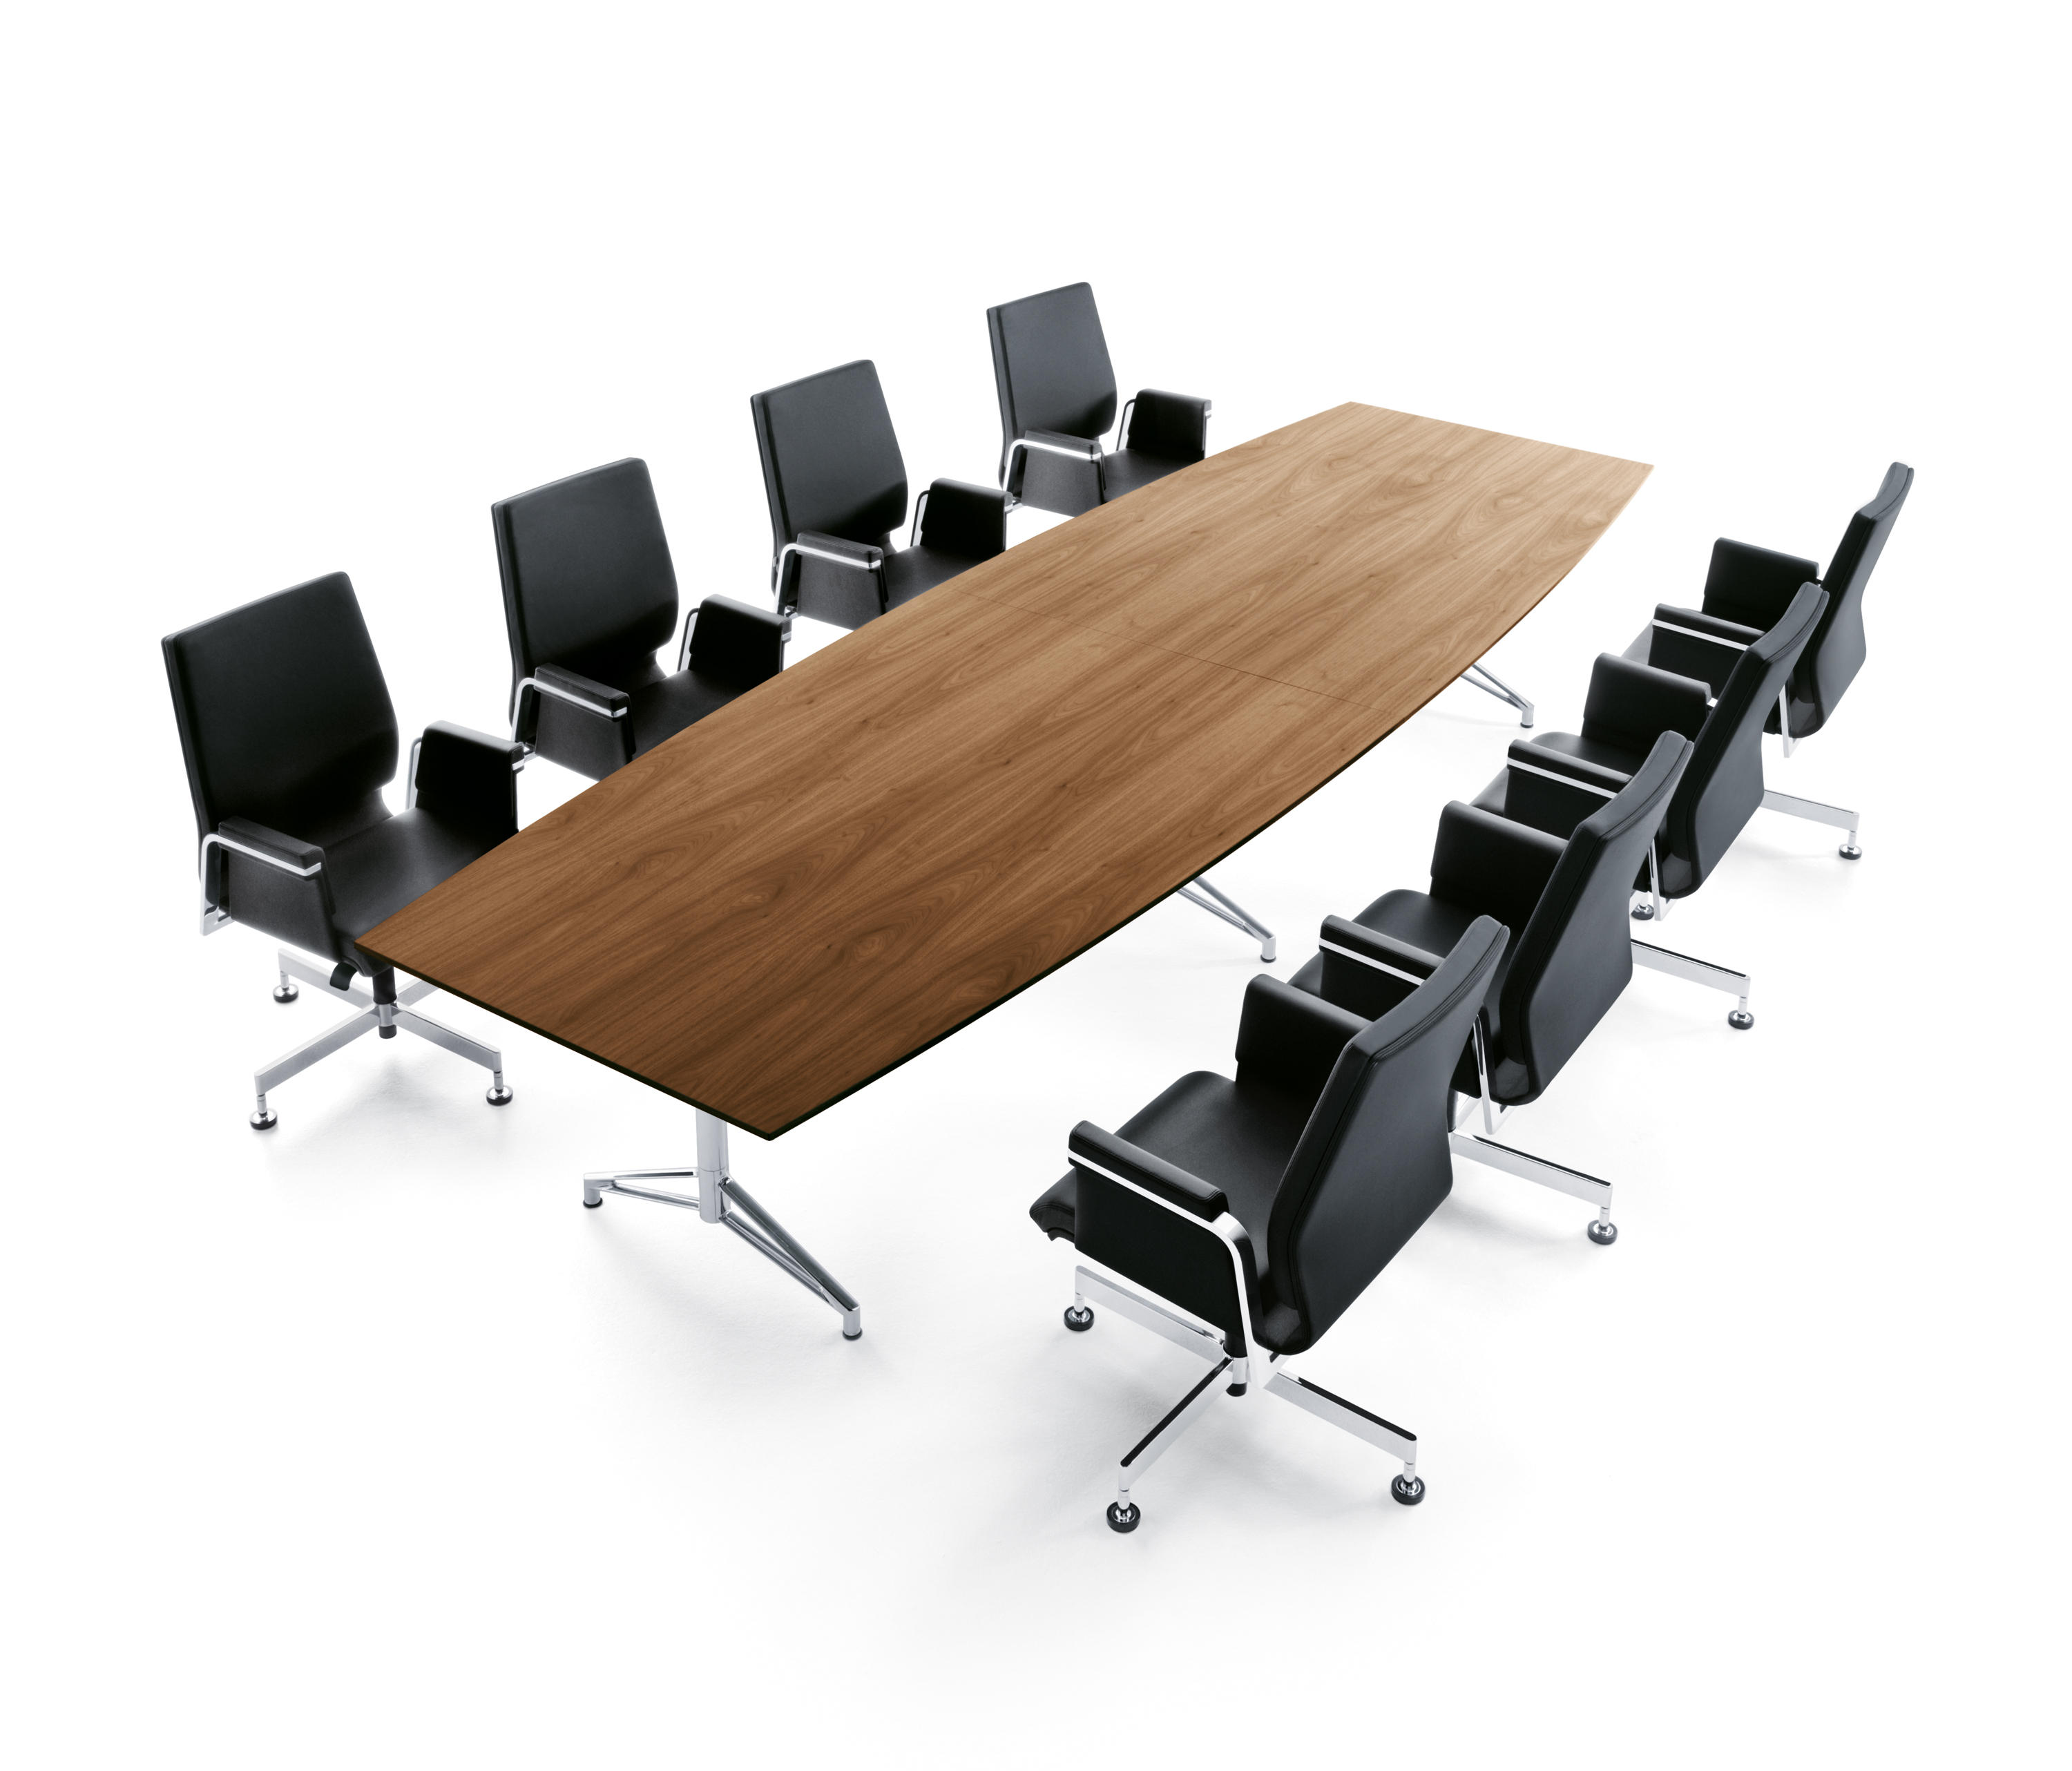 FASCINO-2 F515 - Conference tables from Interstuhl Büromöbel GmbH ...